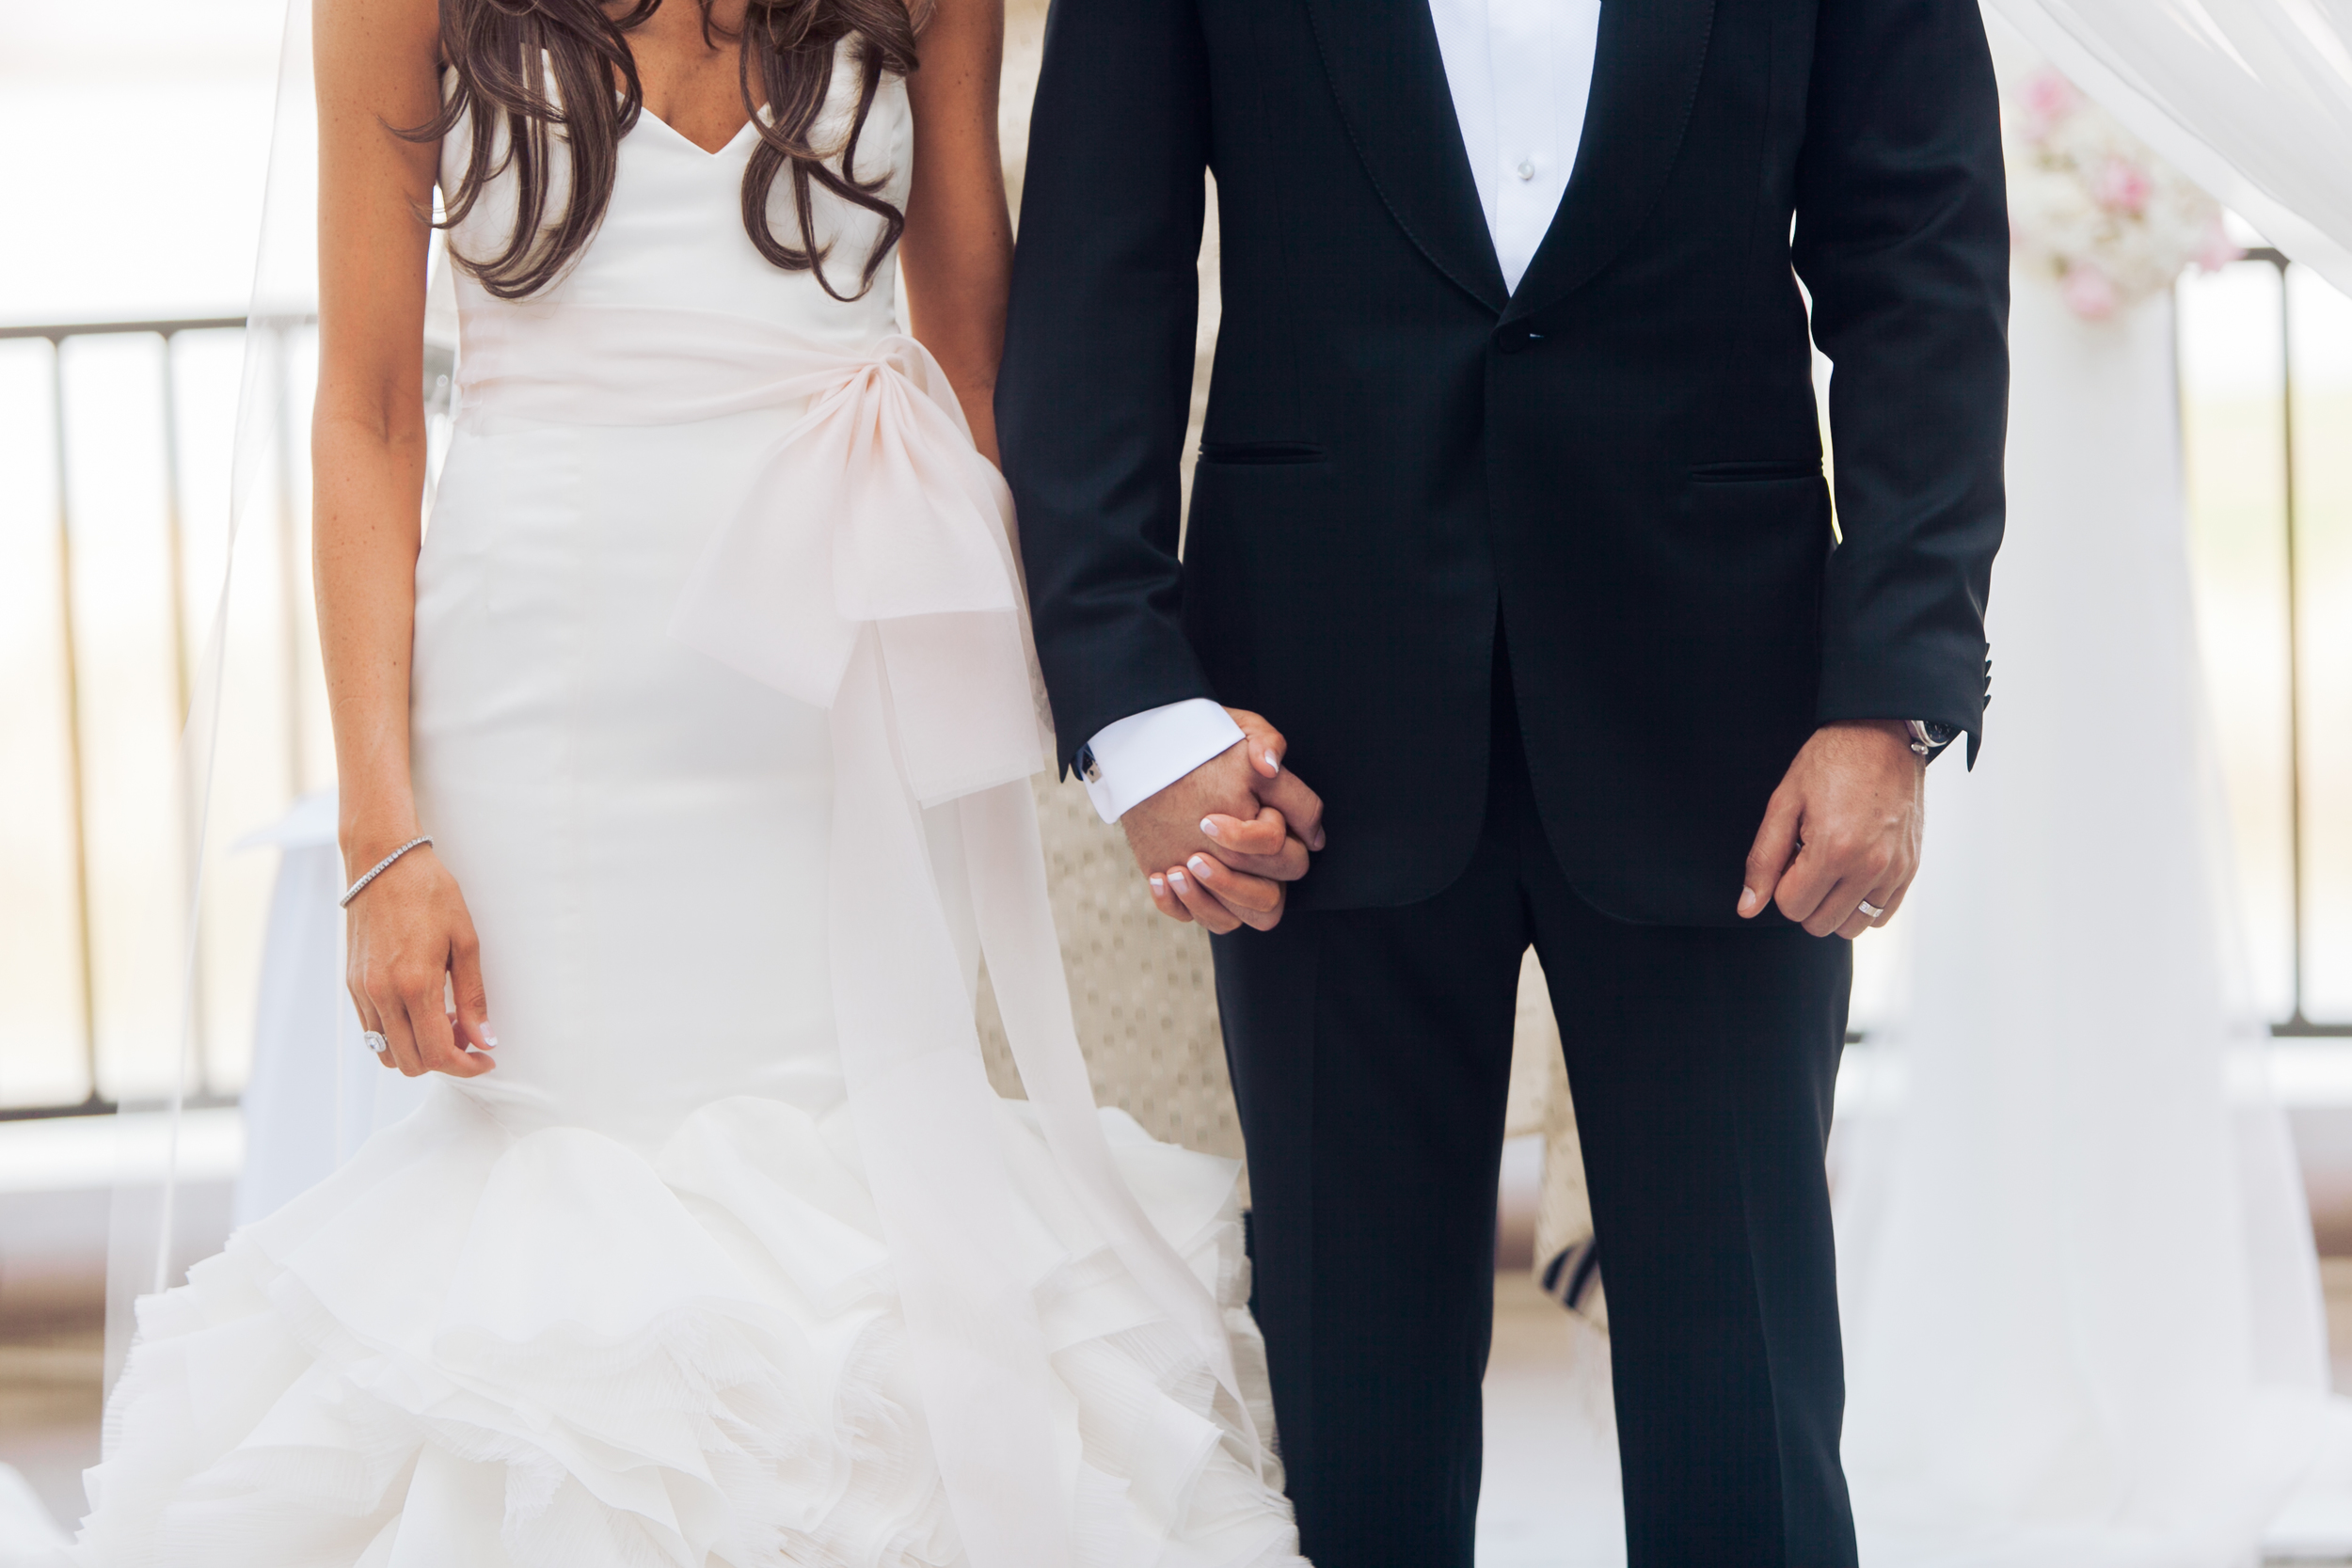 The bride and groom held hands as they were presented to their guests and blessed.    Las Vegas Wedding Planner Andrea Eppolito   Wedding at Lake Las Vegas   White and Blu  sh and Grey Wedding   Luxury Wedding Las Vegas